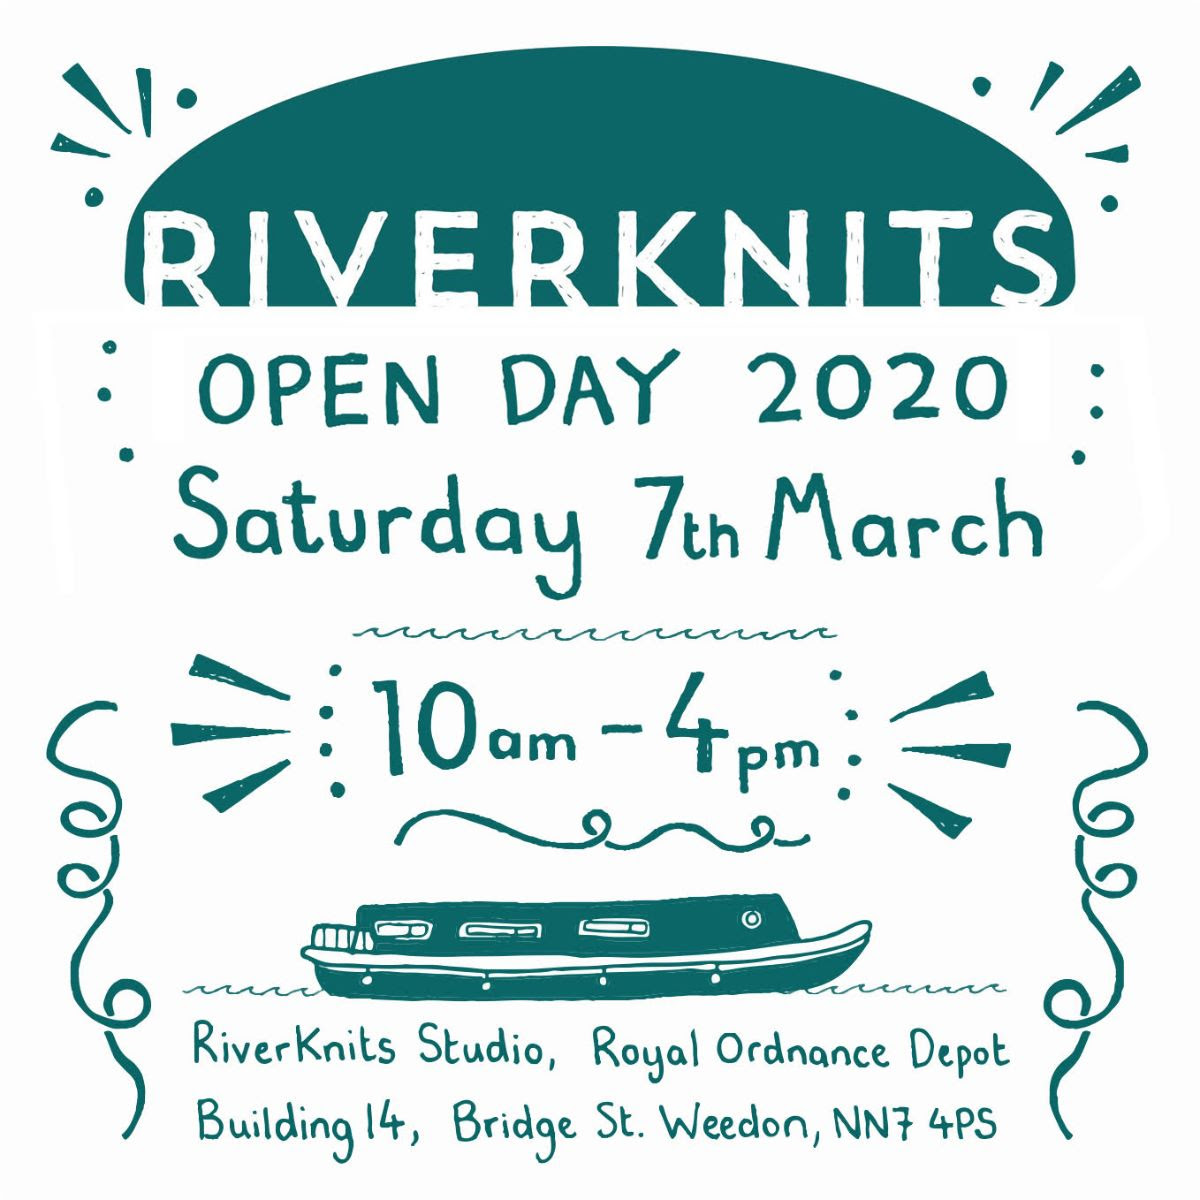 RiverKnits Open Day 2020 Saturday 7th March